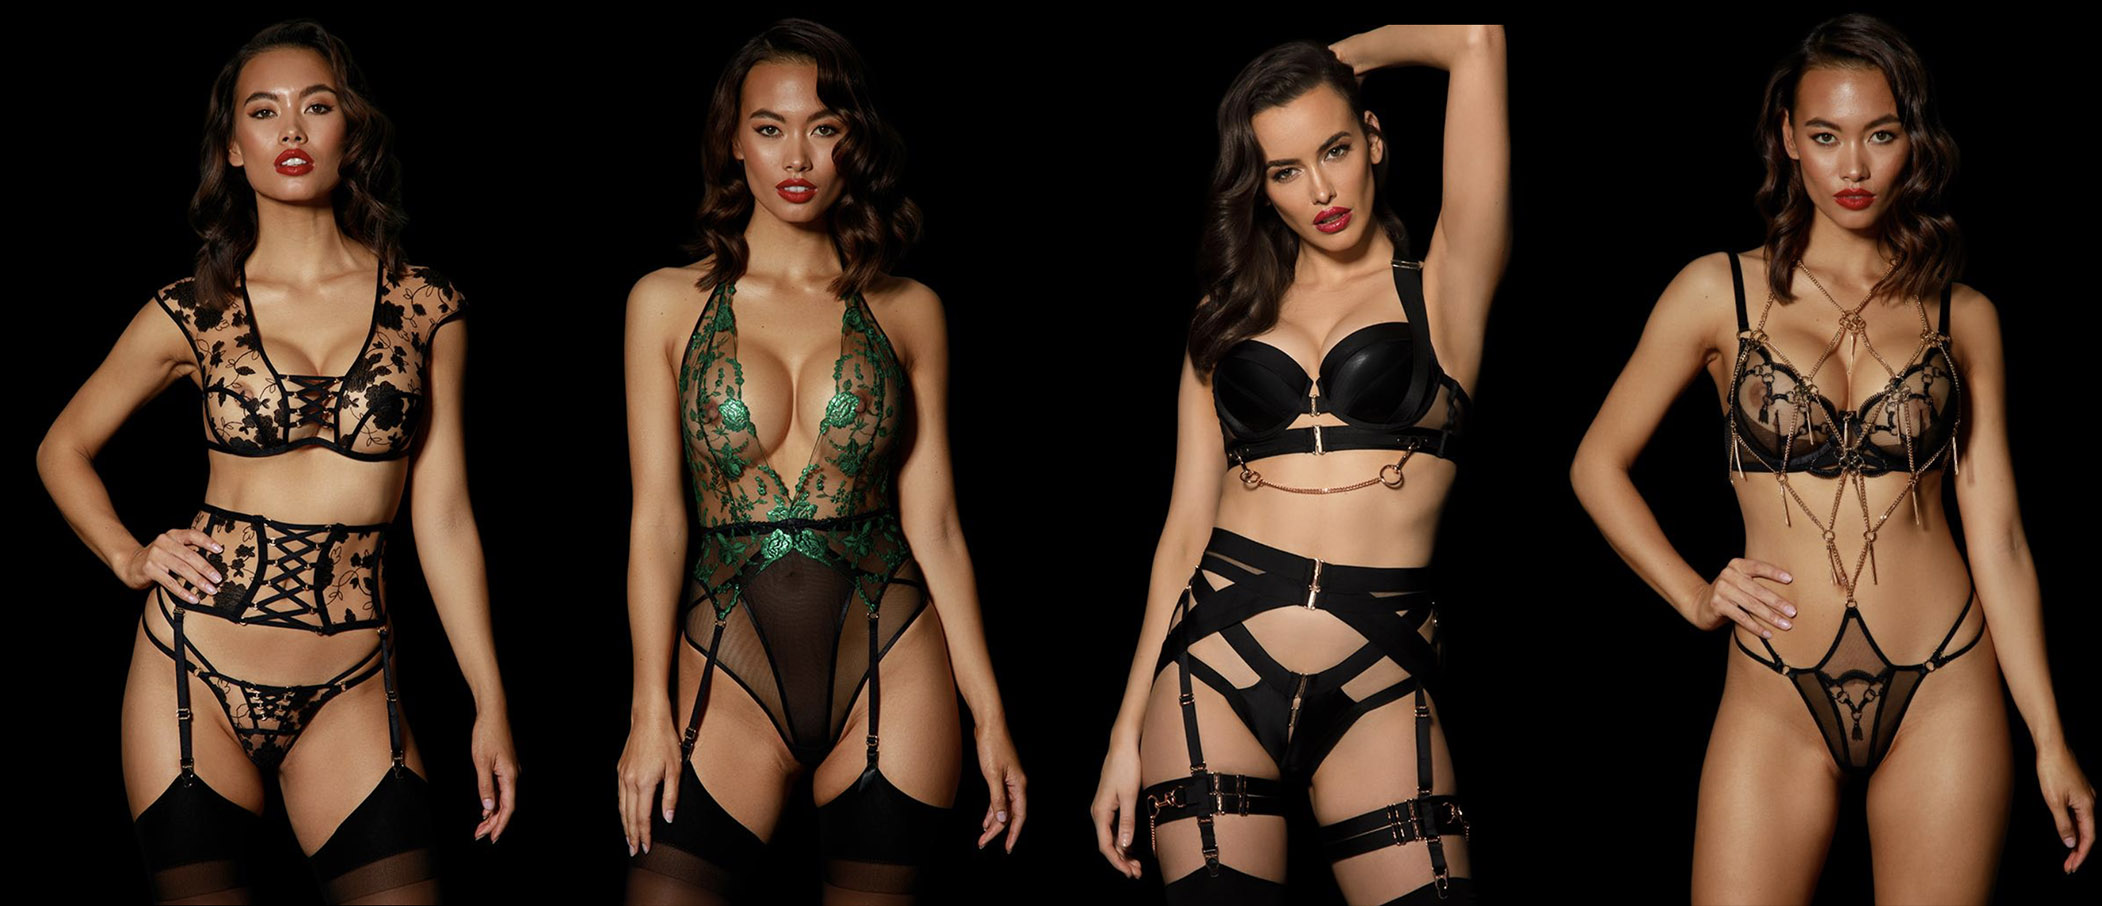 Honey Birdette | Where to shop for your boudoir session with Virago Boudoir, Where to buy lingerie for intimate photography